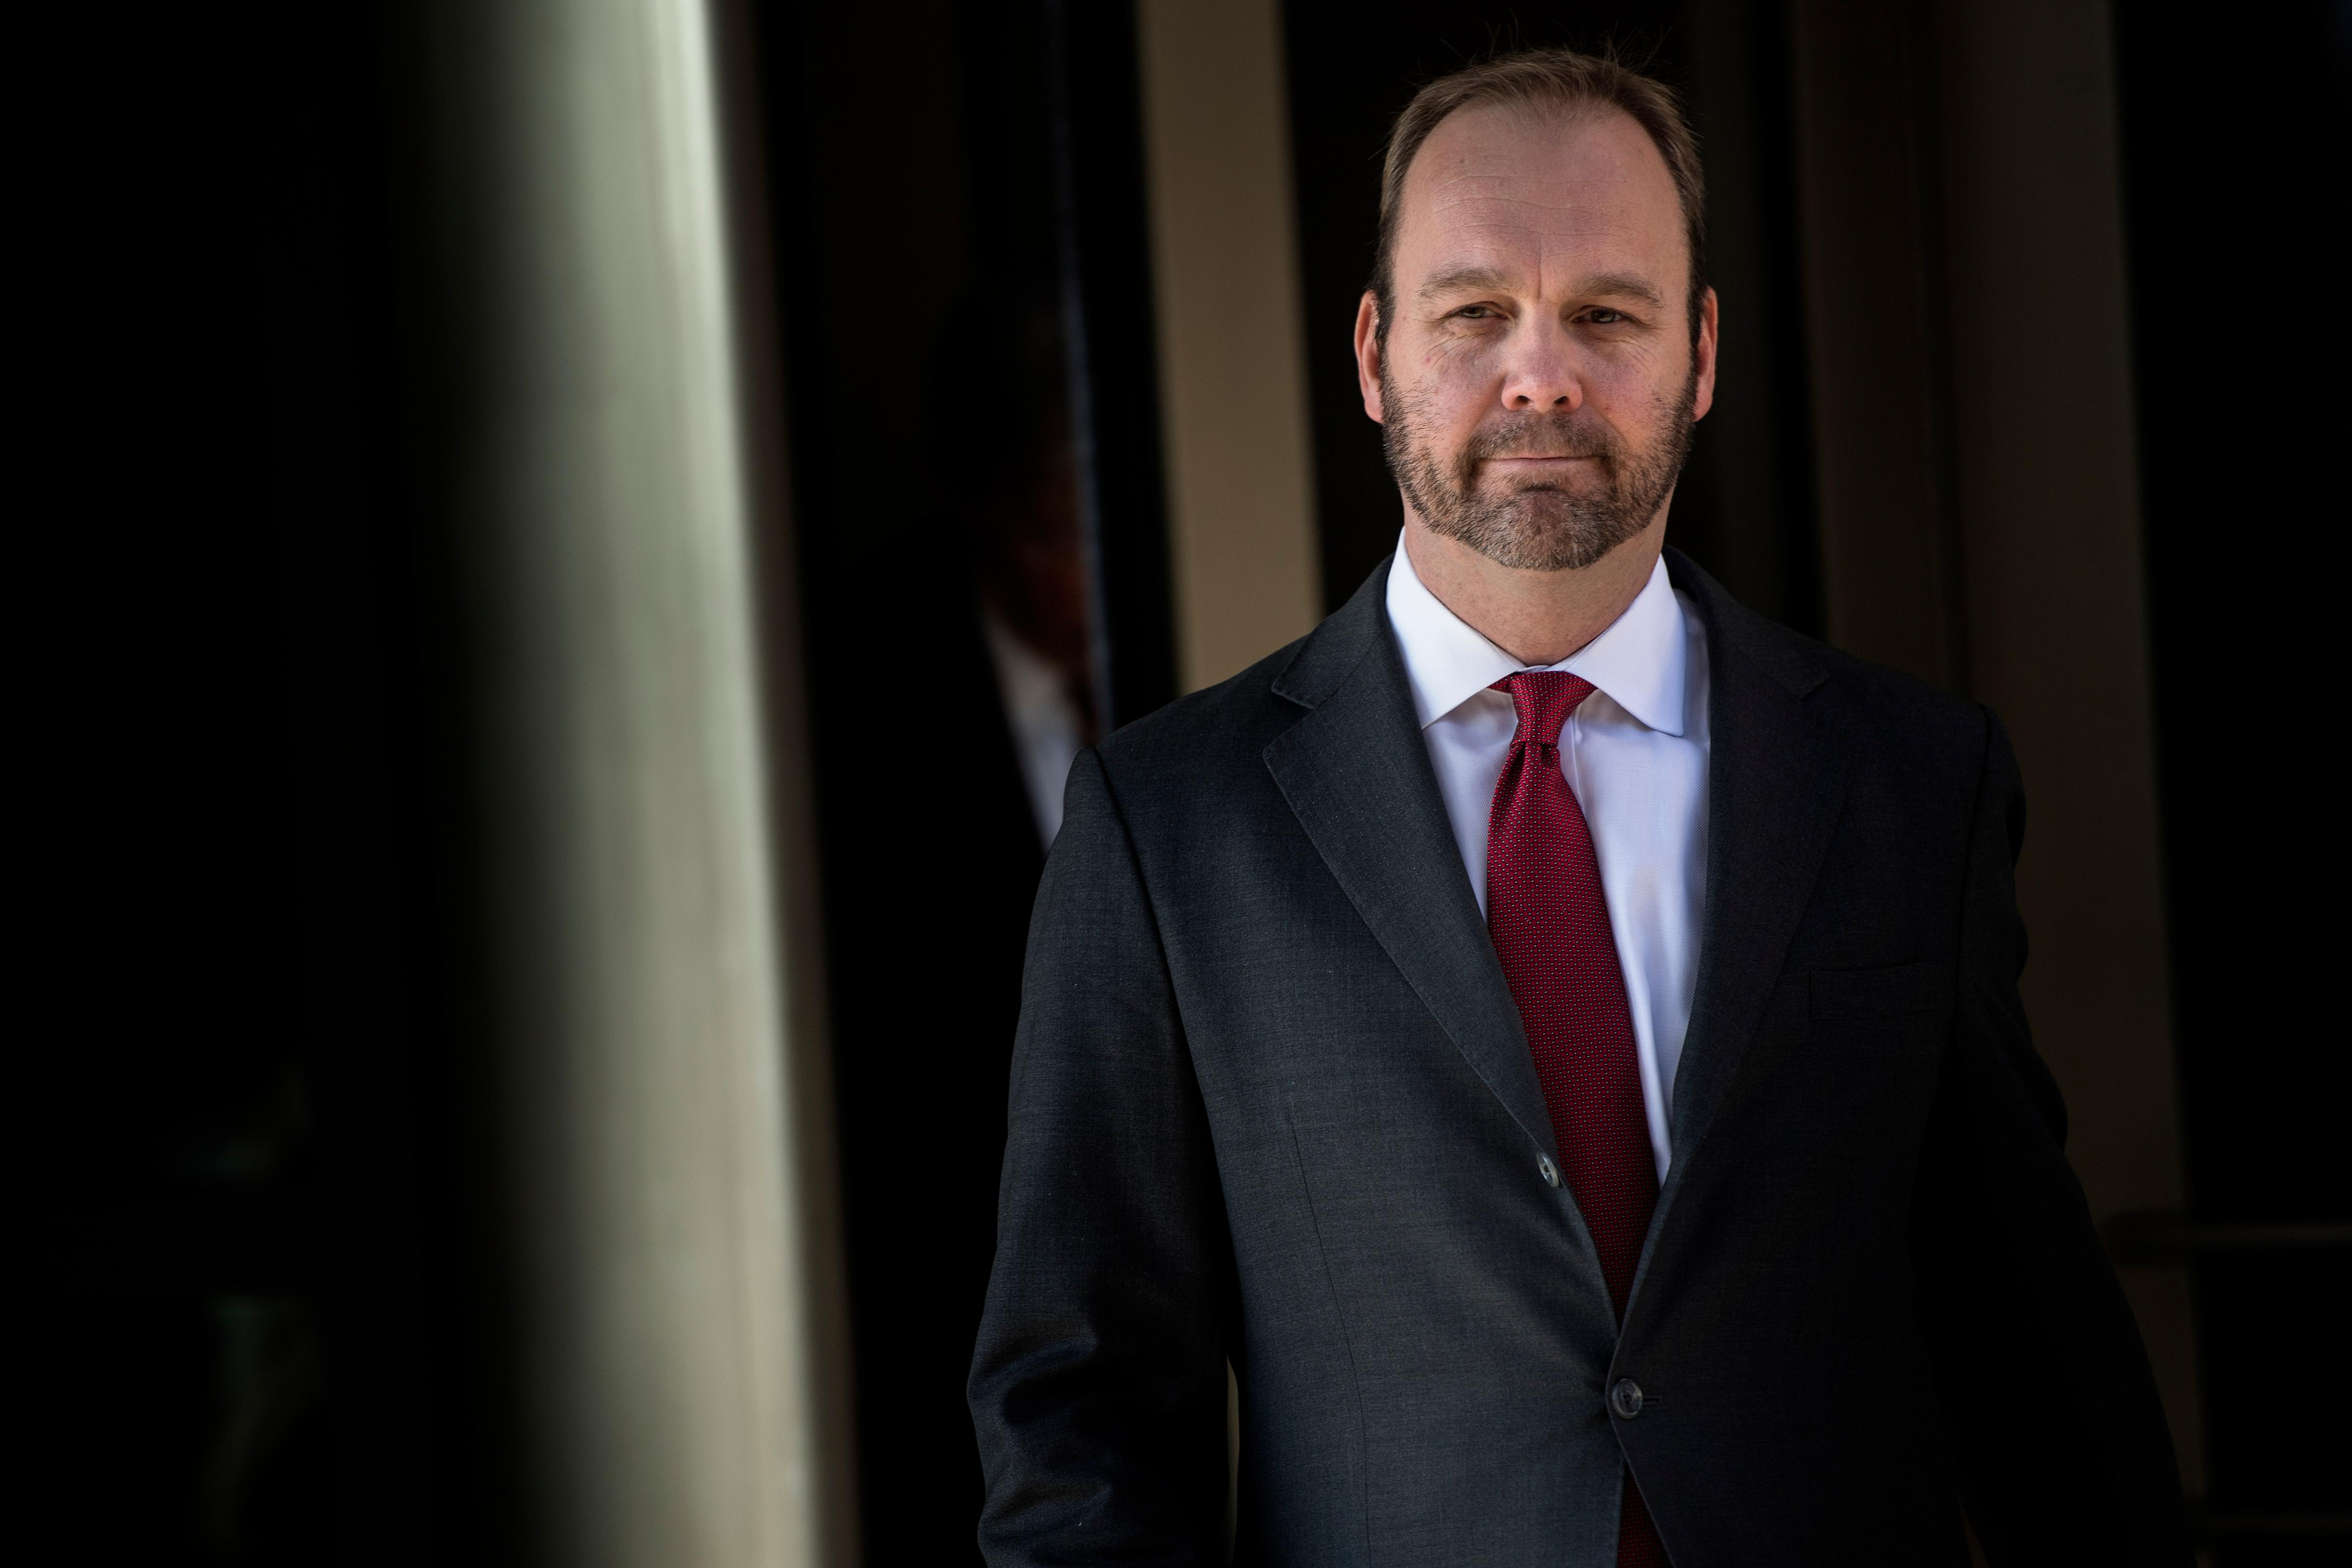 Manafort Witness Rick Gates Admits to 'Many Mistakes' After Defense Lawyer Suggests He Had 4 Affairs